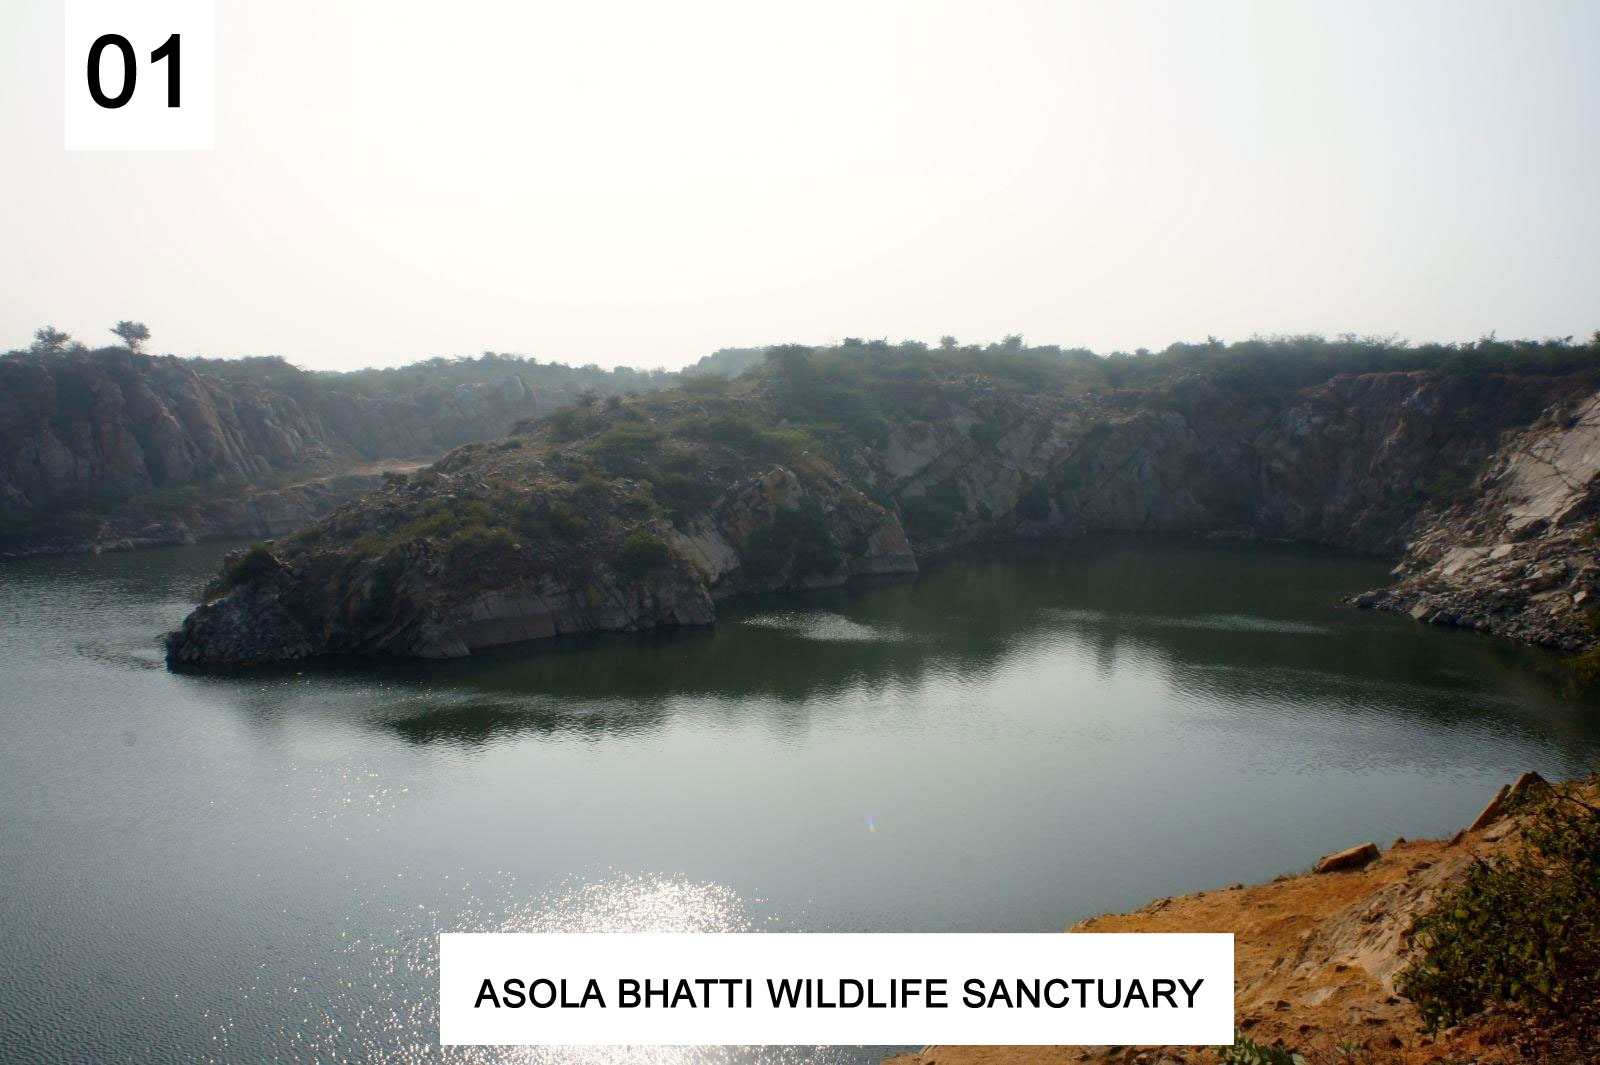 Asola Bhatti Wildlife Sanctuary